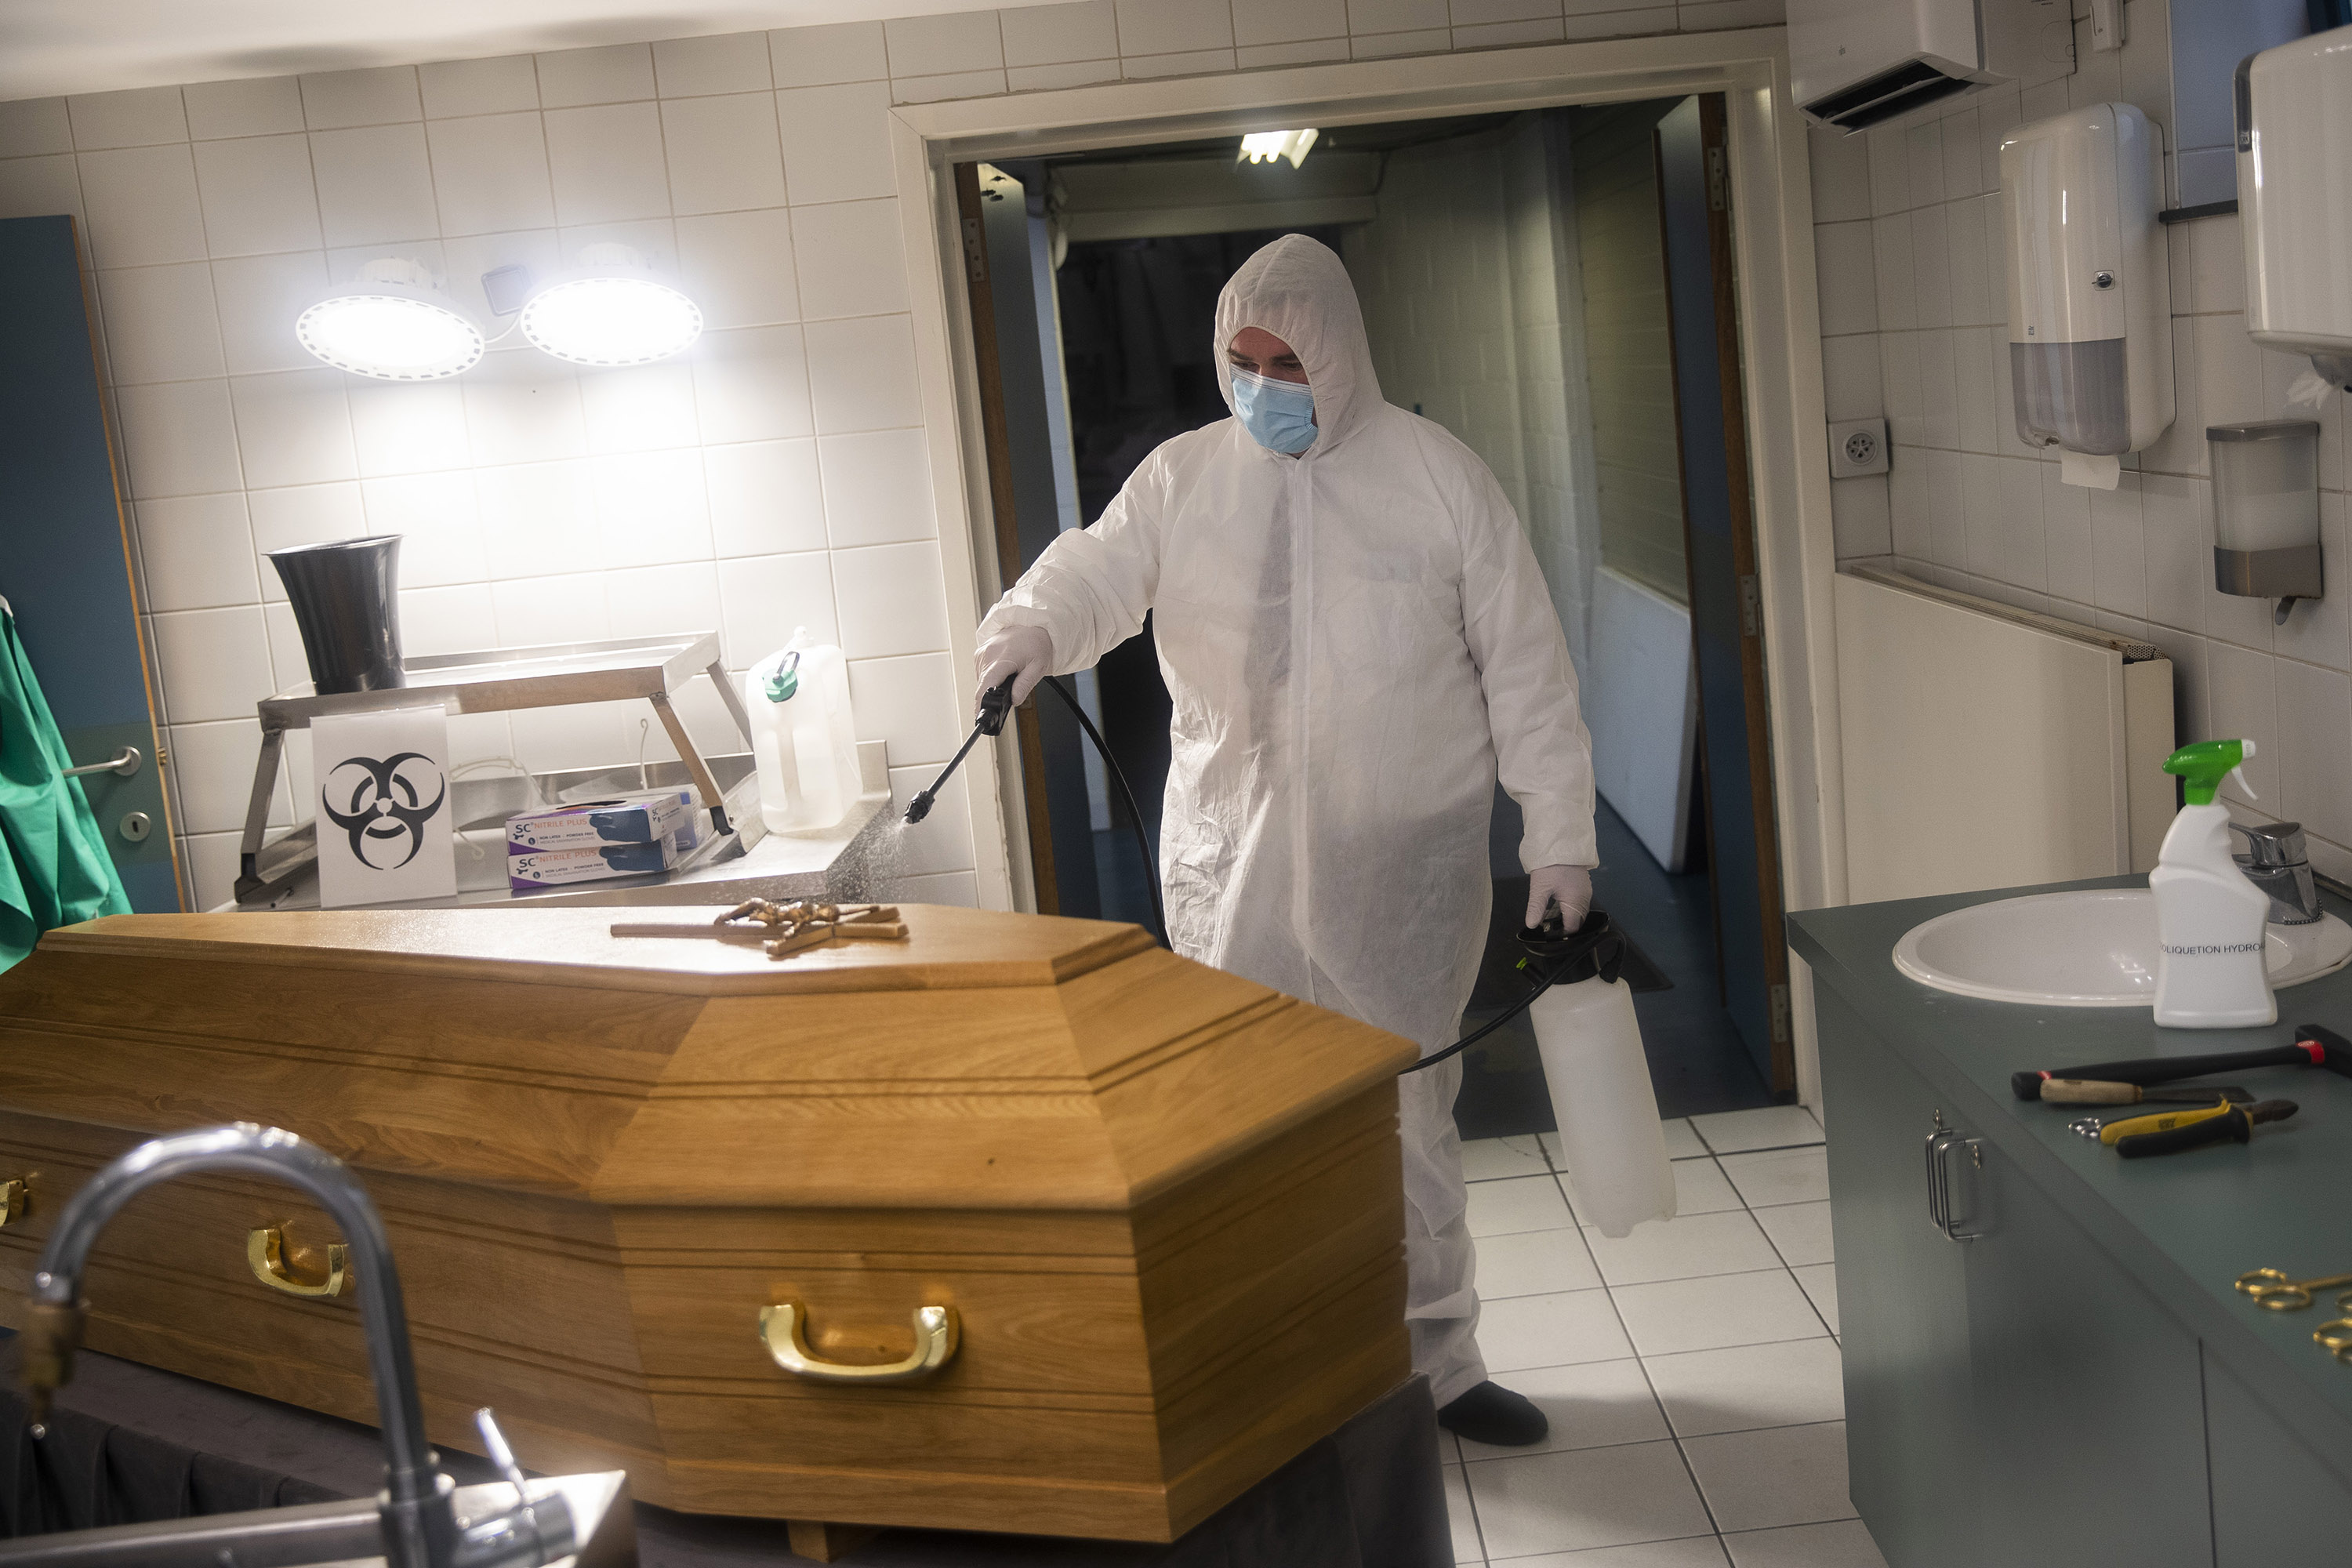 A worker disinfects the casket of someone who died from coronavirus at the Fontaine funeral home in Charleroi, Belgium, on November 17.